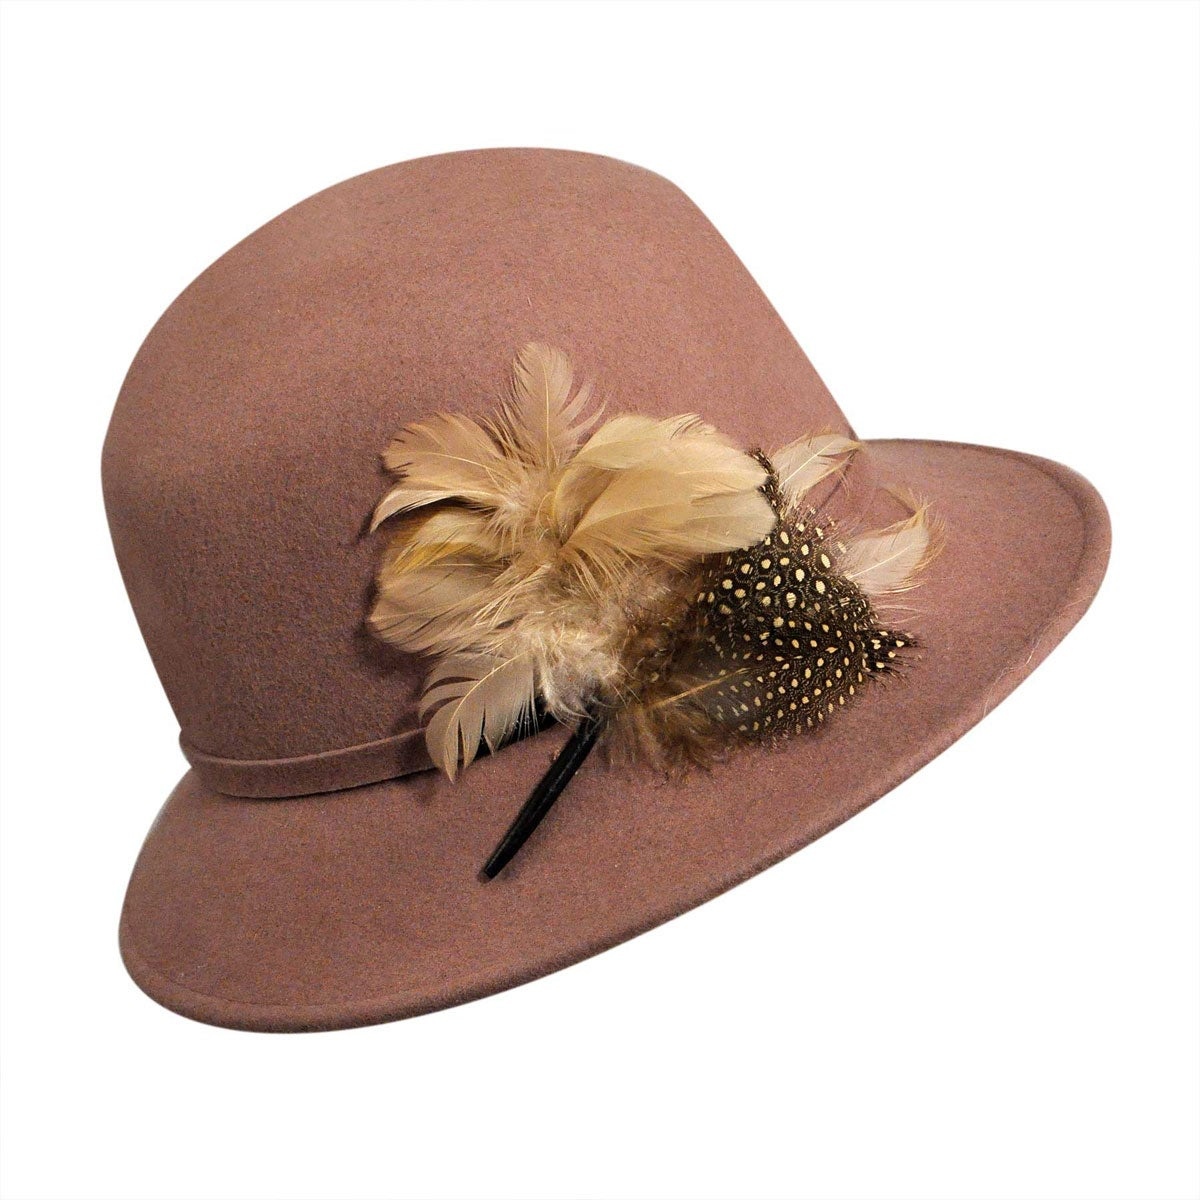 Women's Vintage Hats | Old Fashioned Hats | Retro Hats Keely Cloche $70.00 AT vintagedancer.com